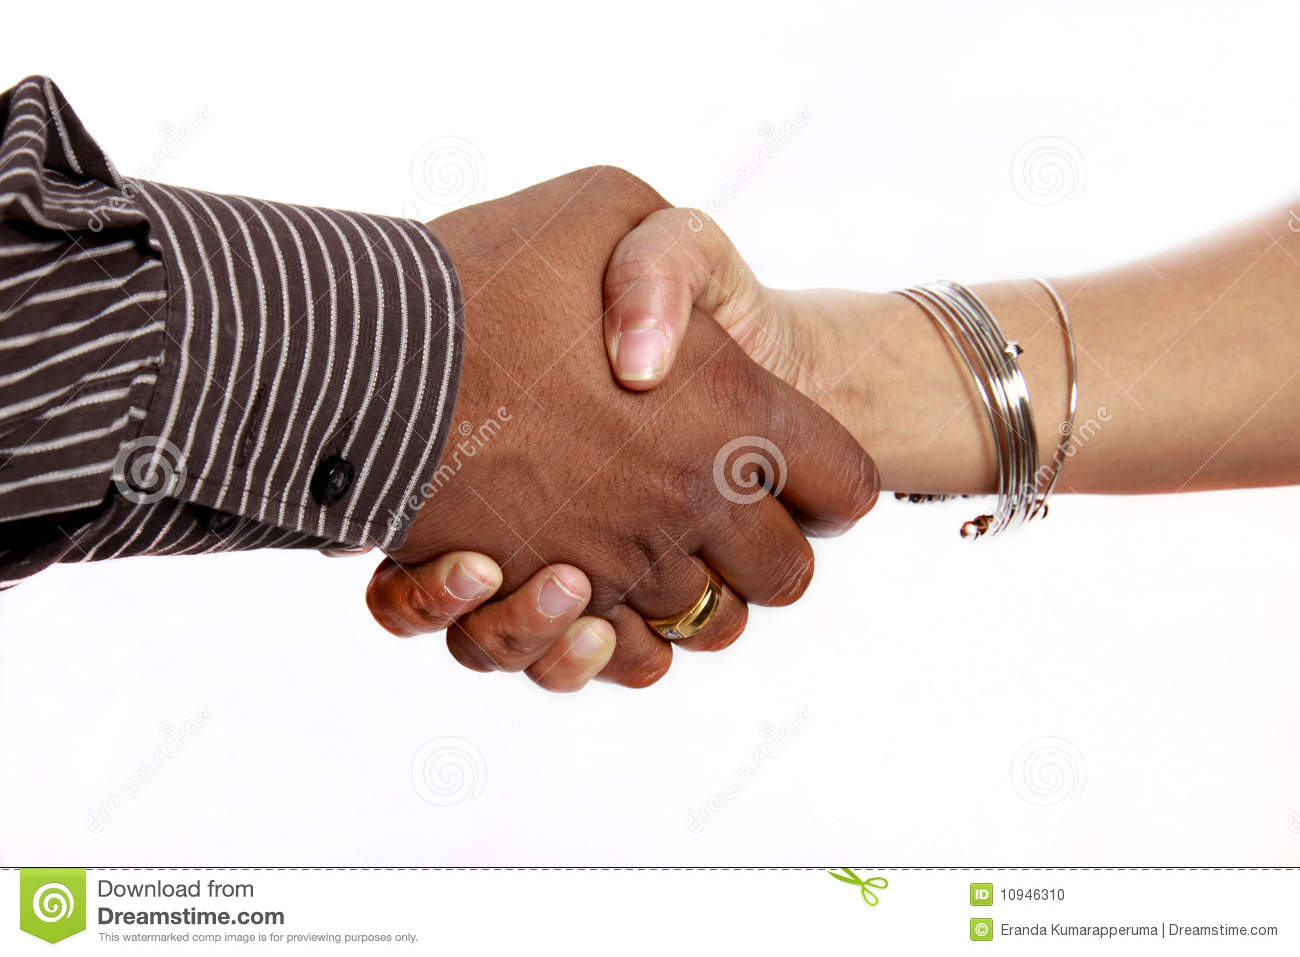 Handshake male and female meeting welcoming showing compassion. Business Meeting Handshake